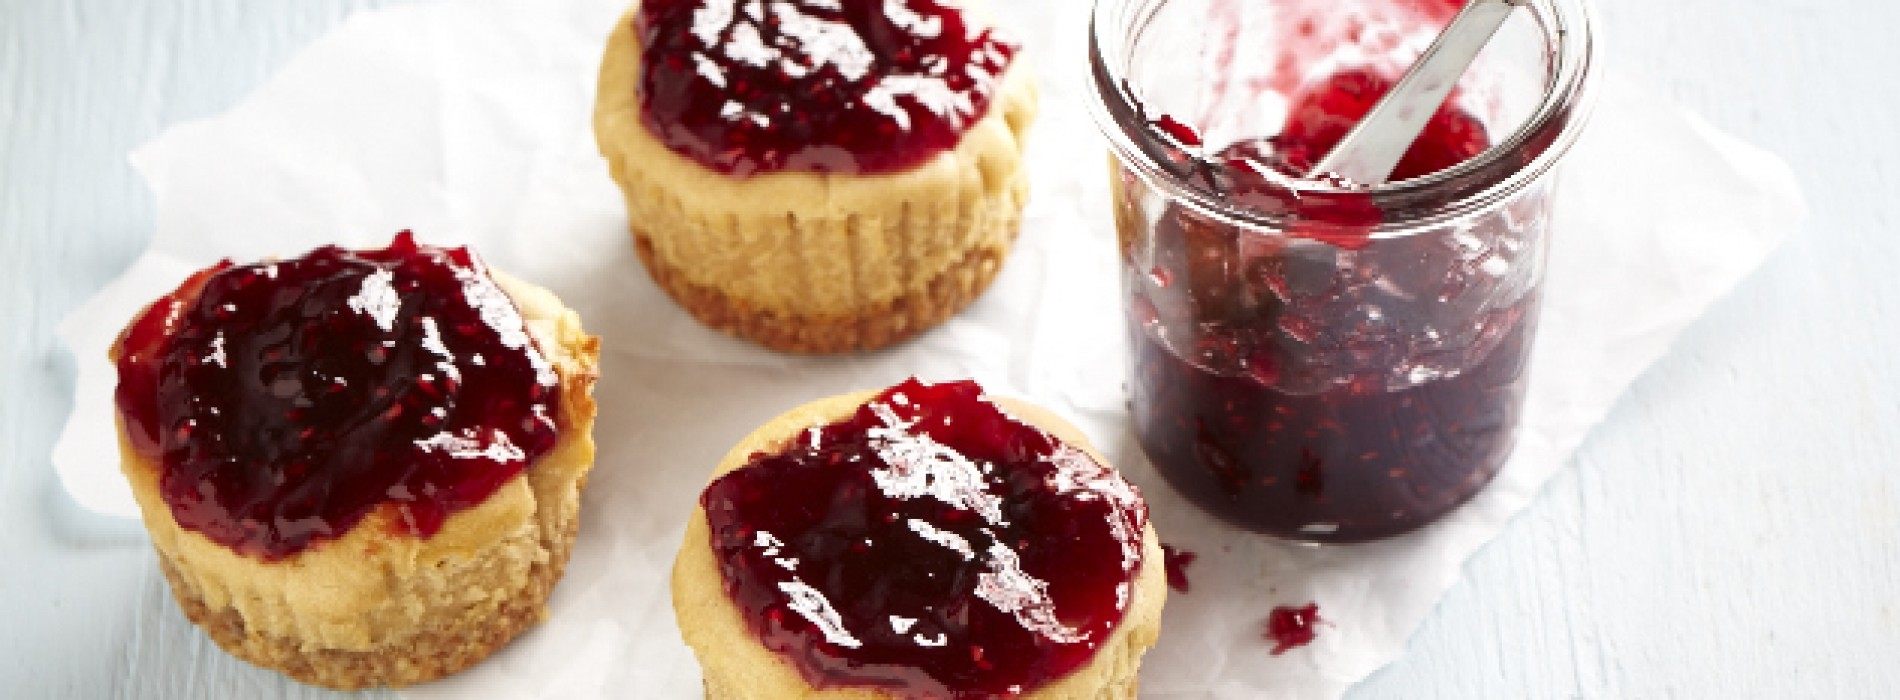 Mini Peanut Butter and Jelly Cheesecakes